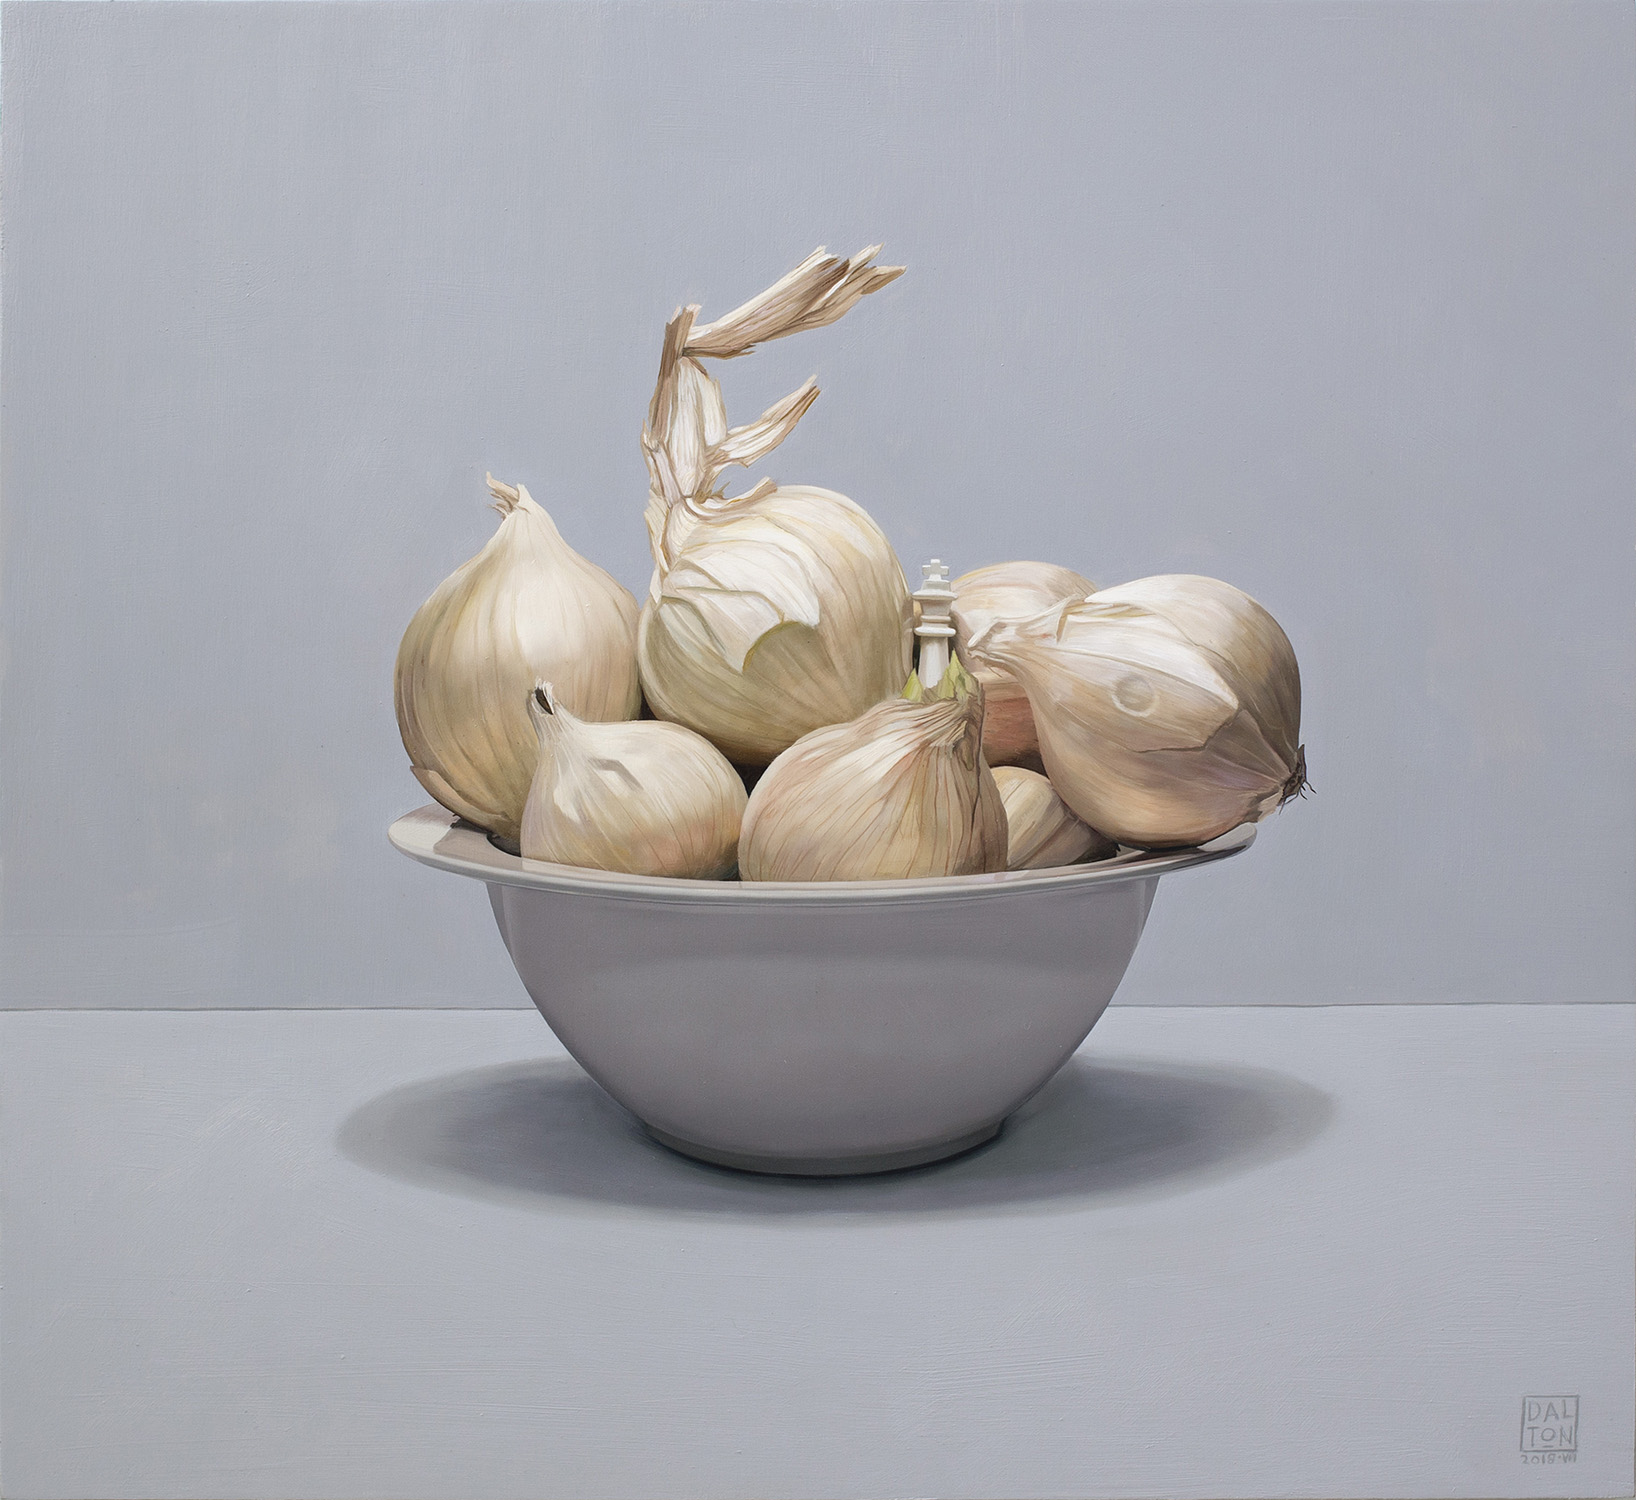 Slightly White Onions Jonathan Dalton 55x60cm Oil on board 02.jpg